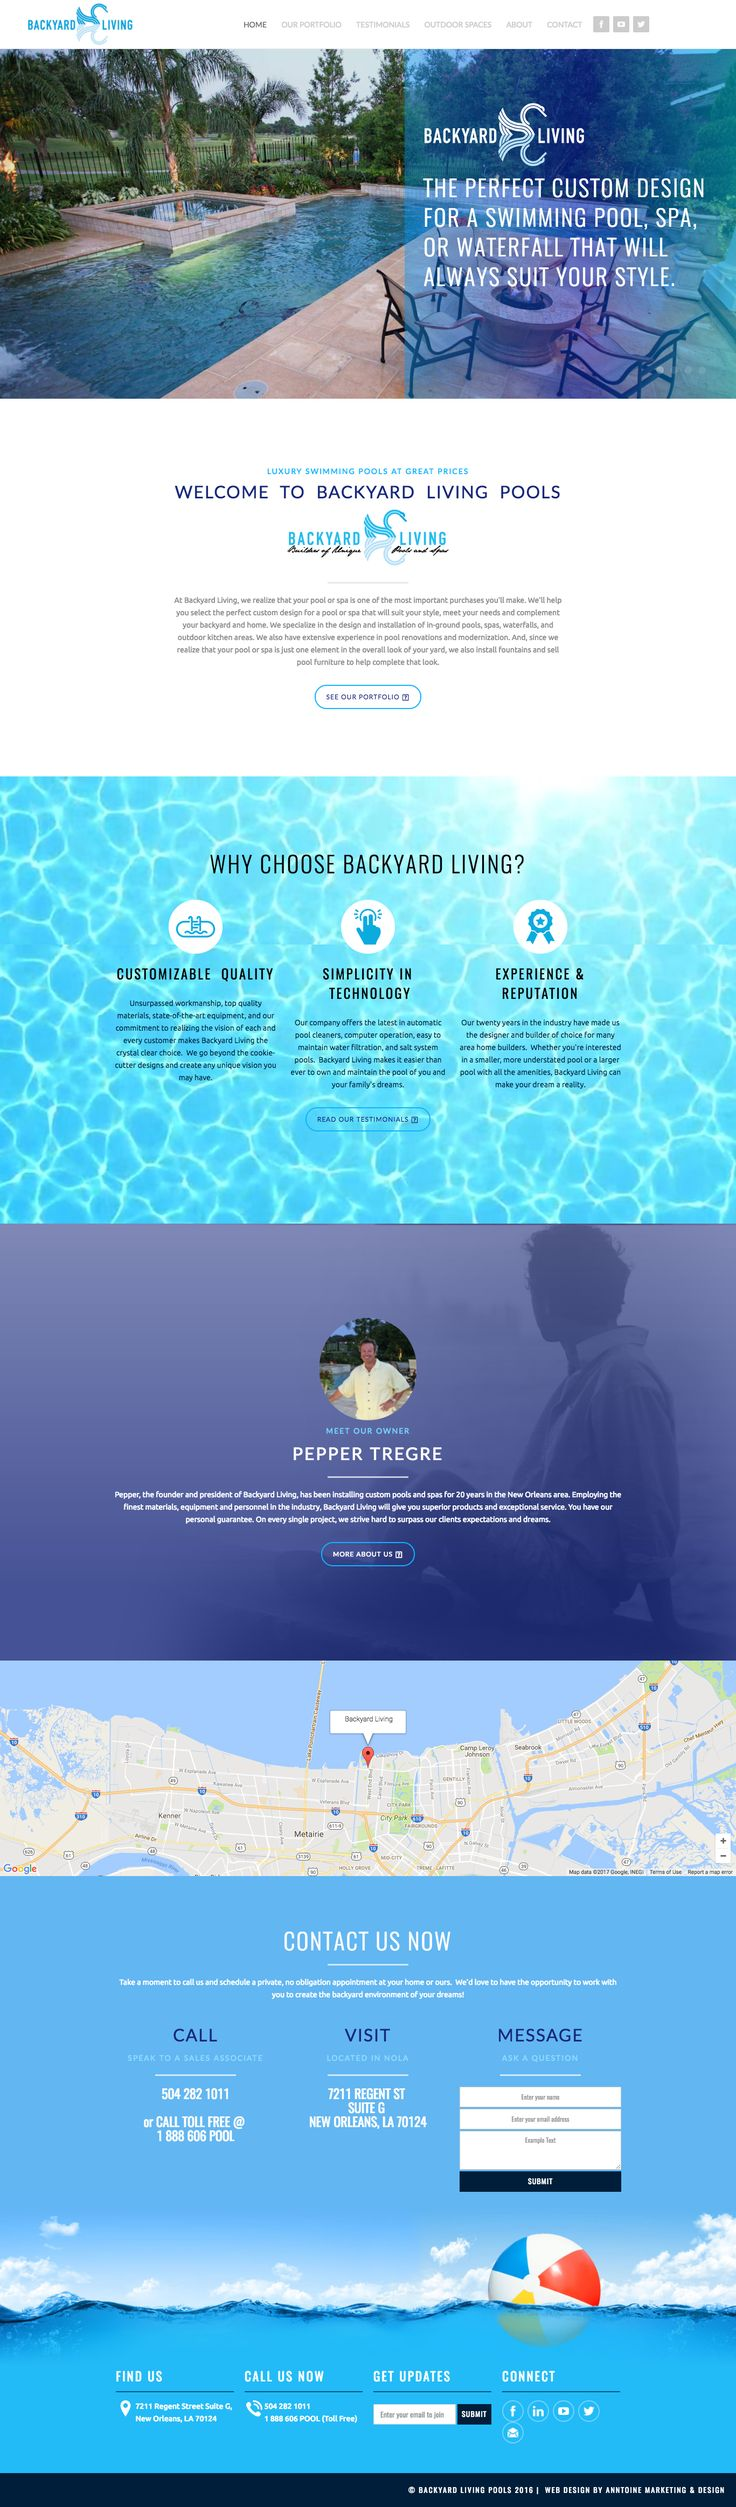 Web Design | Website Design | Responsive Website | Responsive Website Design | Fitness Website | Fitness Design | Custom Website Design | Custom Website | Healthy School Food Collaborative Website | Branded Website Design | Website Inspiration | Website Ideas | Web Design Ideas | Parallax Scrolling | Outdoor Pools | Swimming Pools | http://backyardlivingpools.com/index.html?gclid=CP22iPKD2dMCFQiUaQodTzwCrw